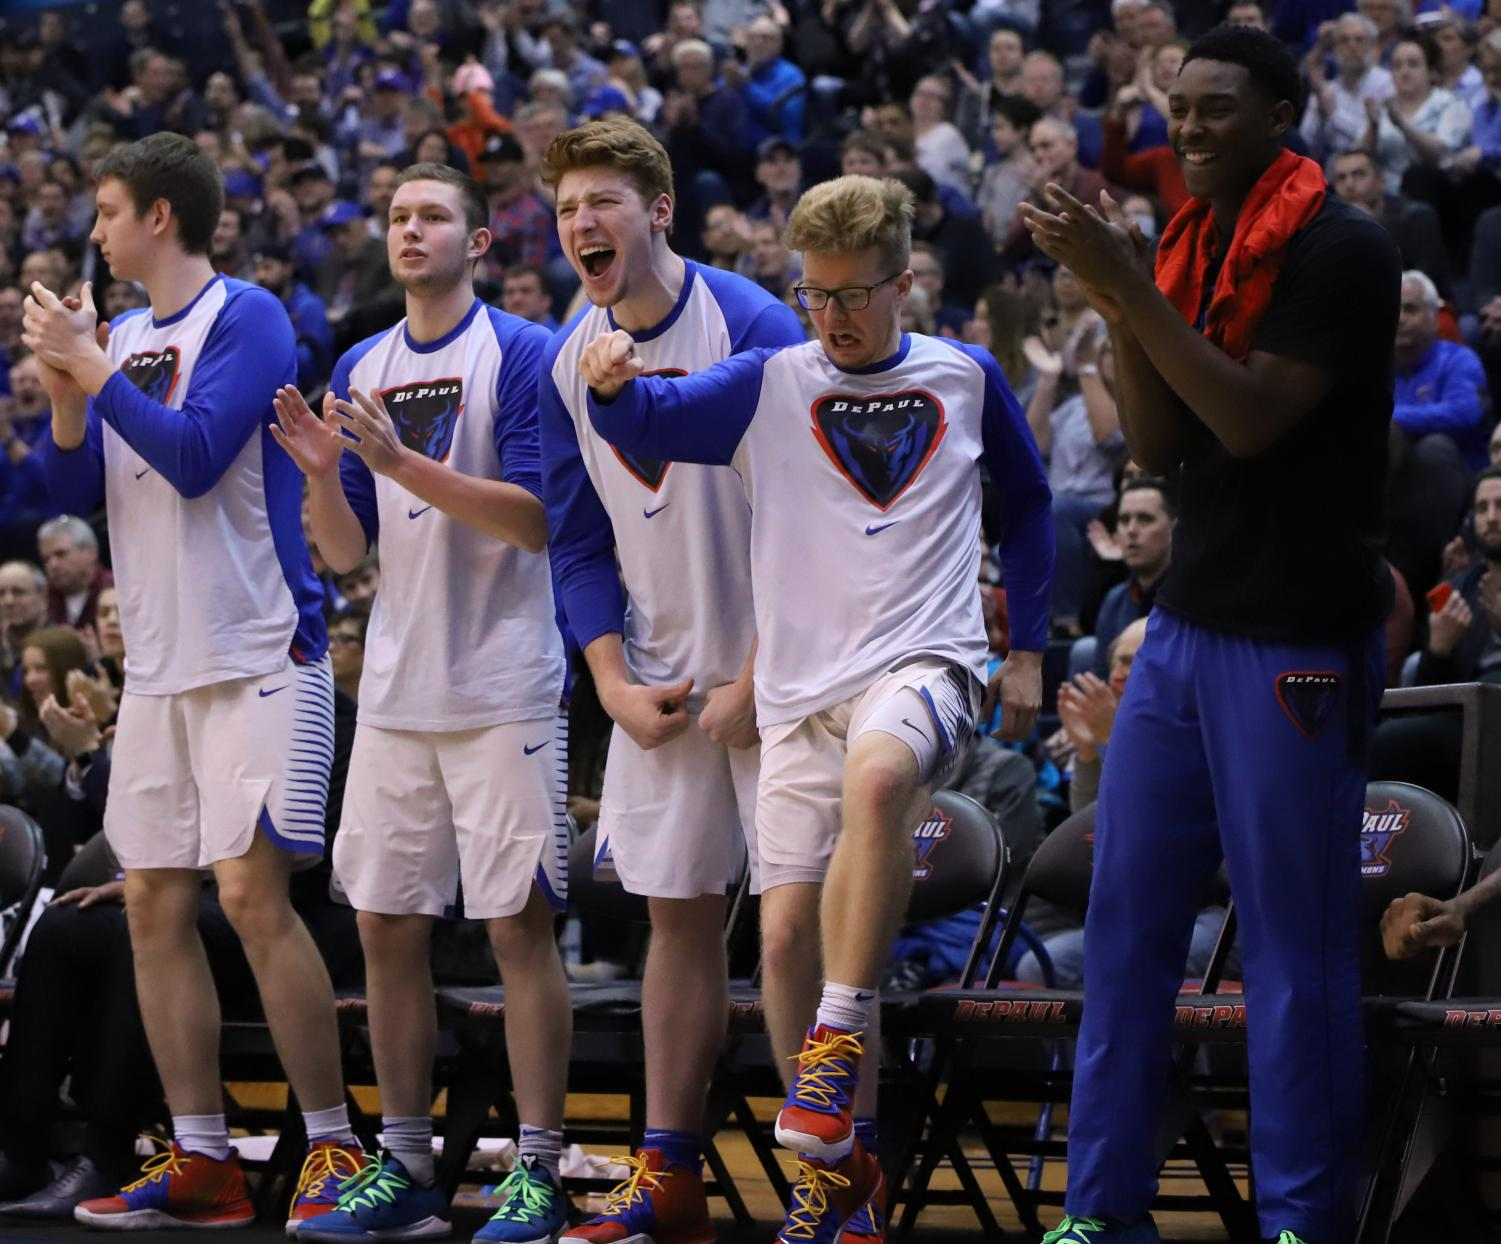 (Left to right) George Maslennikov, John Diener, Mick Sullivan, Pantelis Xidias and Jalen Coleman-Lands react to a play during DePaul's victory over USF Wednesday night at McGrath-Phillips Arena. The Blue Demons won the game 100-96. Alexa Sandler | The DePaulia